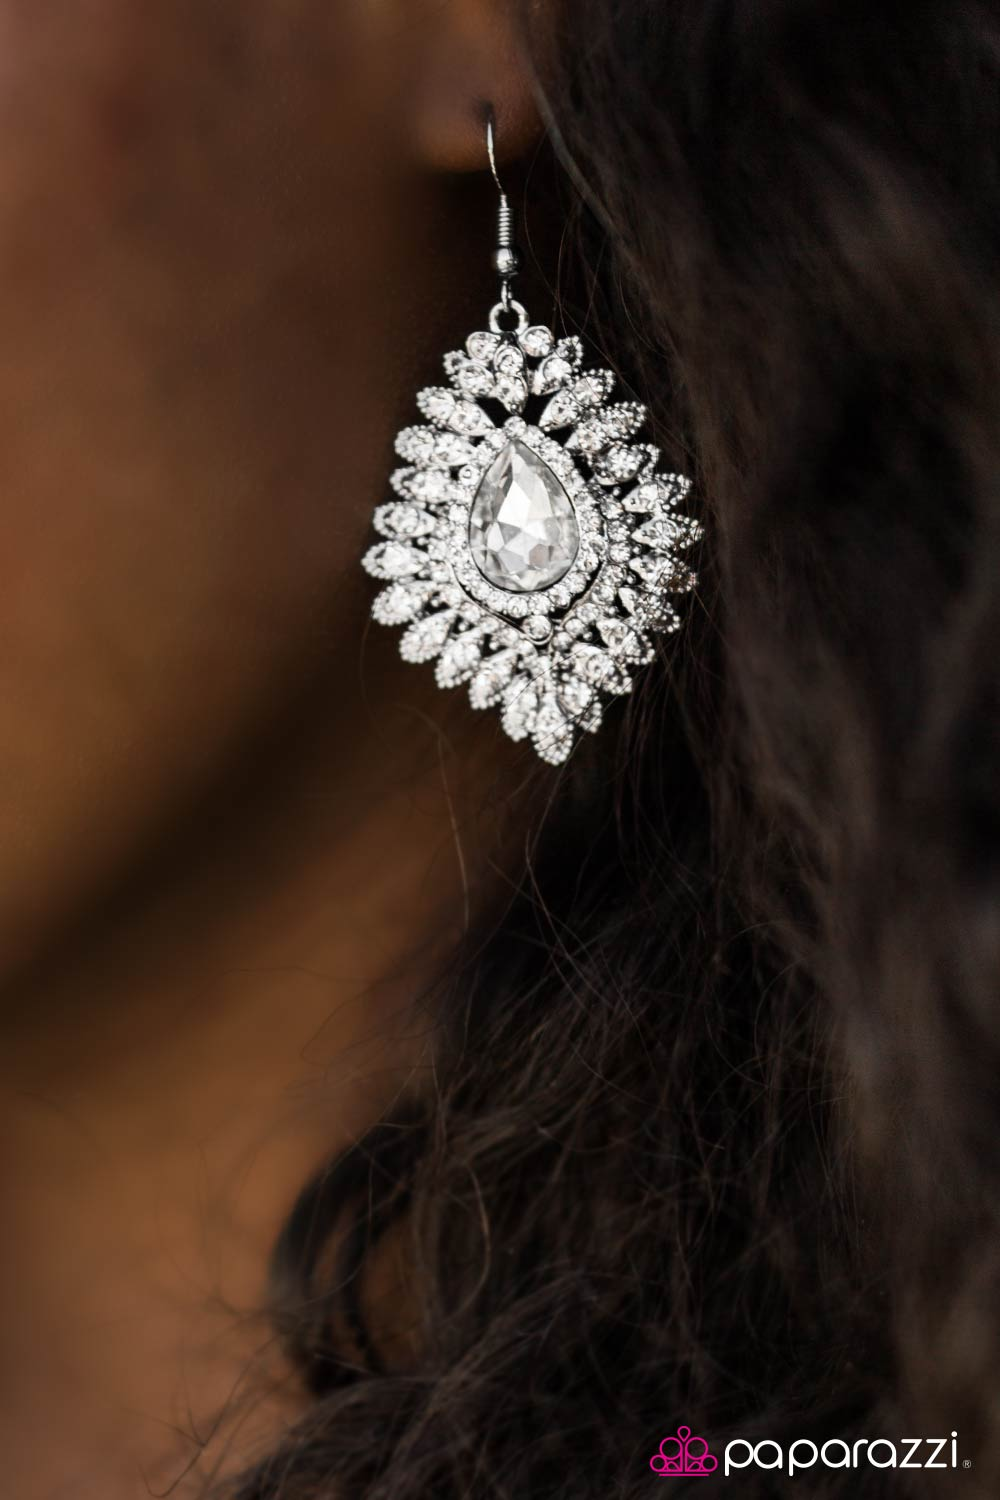 DIVA-de and Conquer - White - Paparazzi earrings